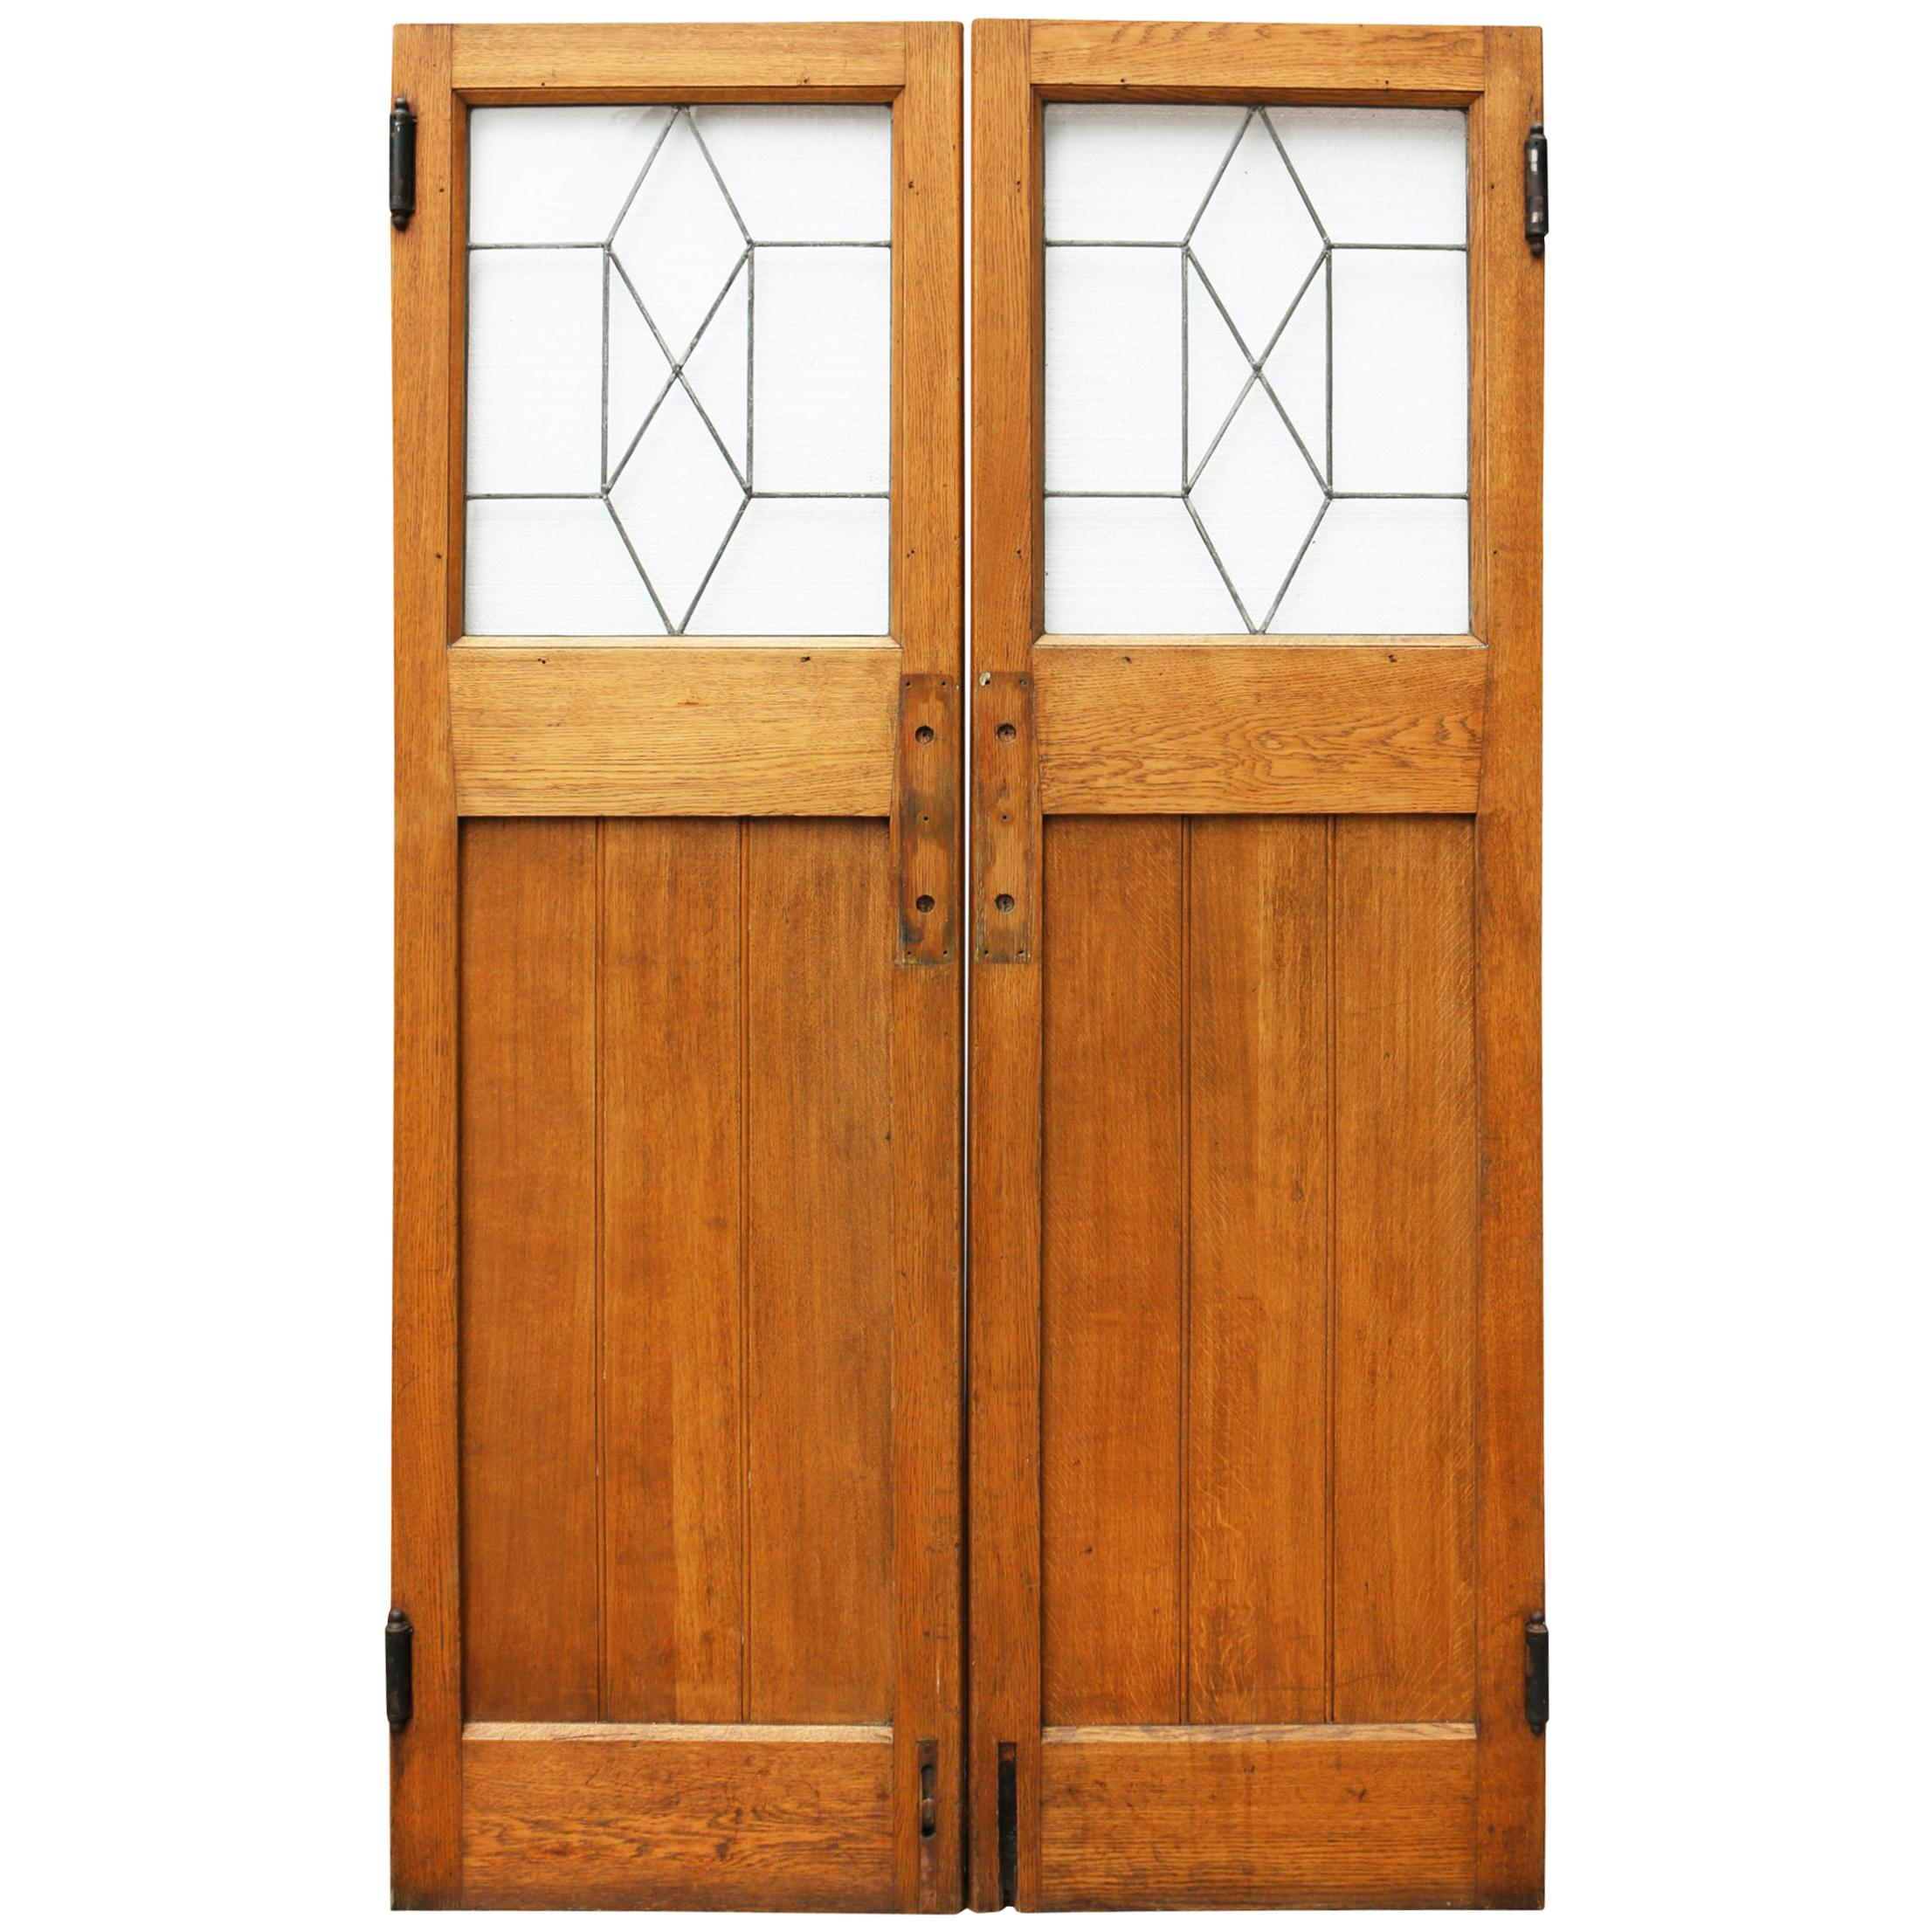 Pair of 1930s Oak Interior Swing Doors with Leaded Glass  sc 1 st  1stDibs & 1930s Doors and Gates - 28 For Sale at 1stdibs